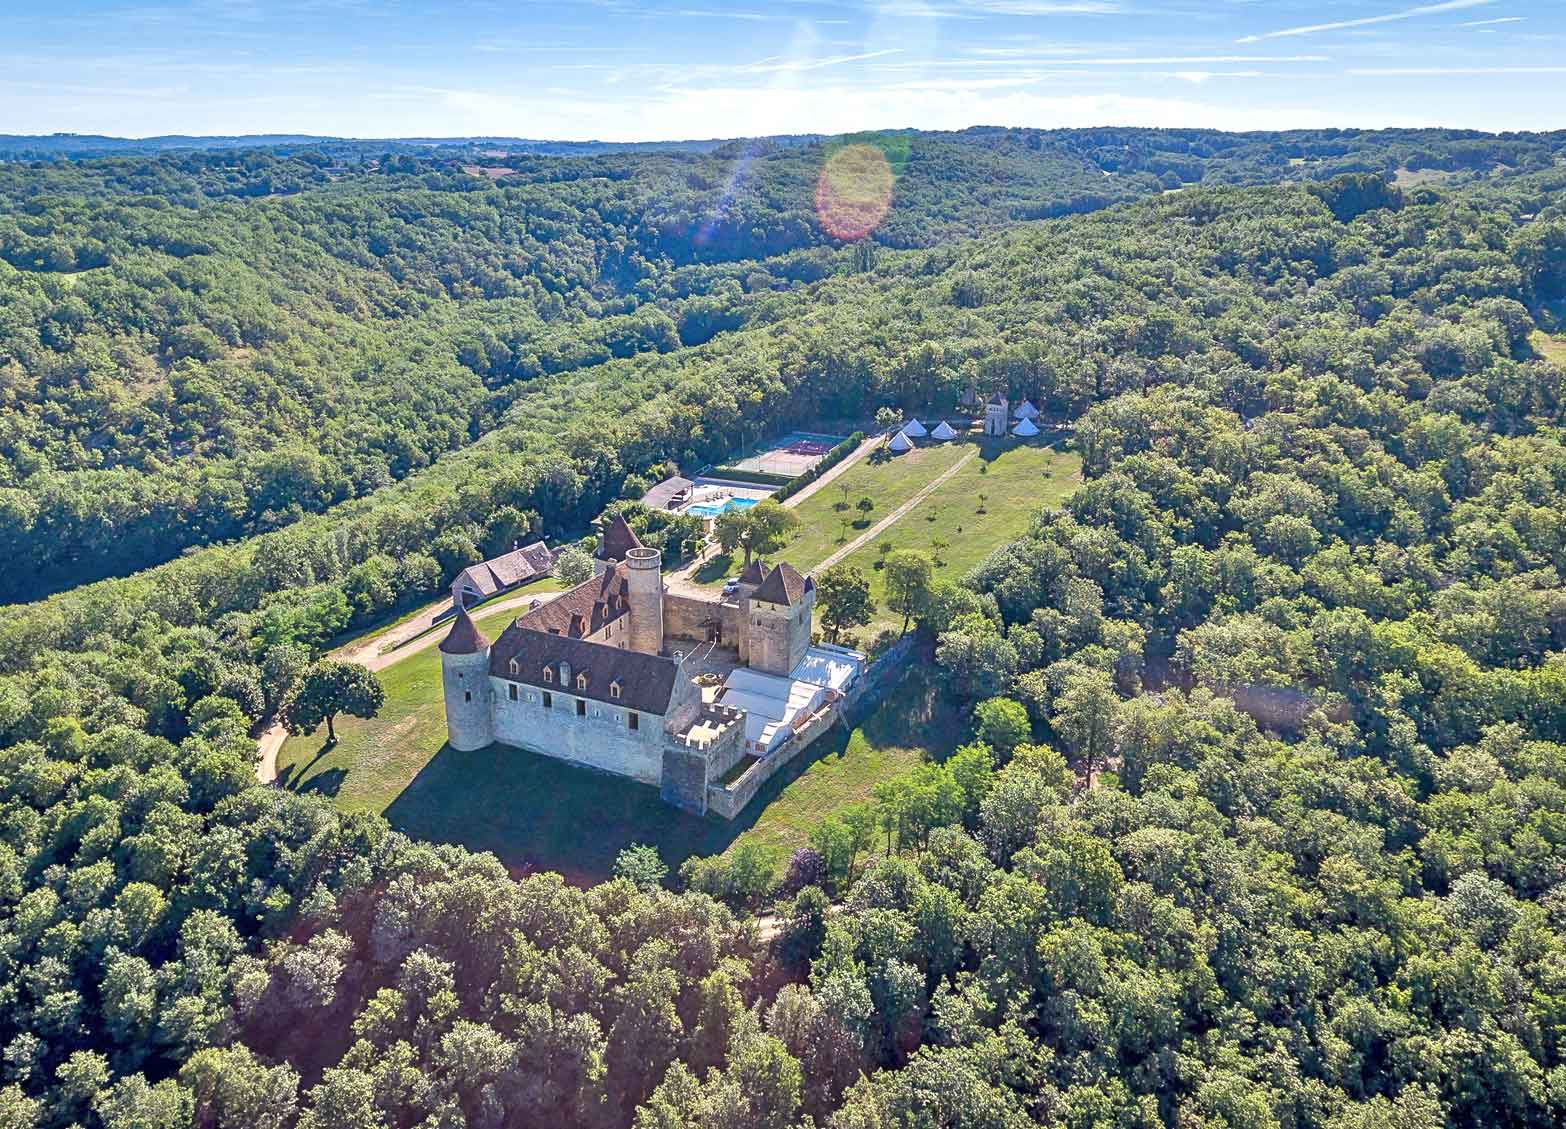 Sitting on top of a hill with stunning panoramic views over the surrounding countryside, this château has origins dating back to the 14th century.